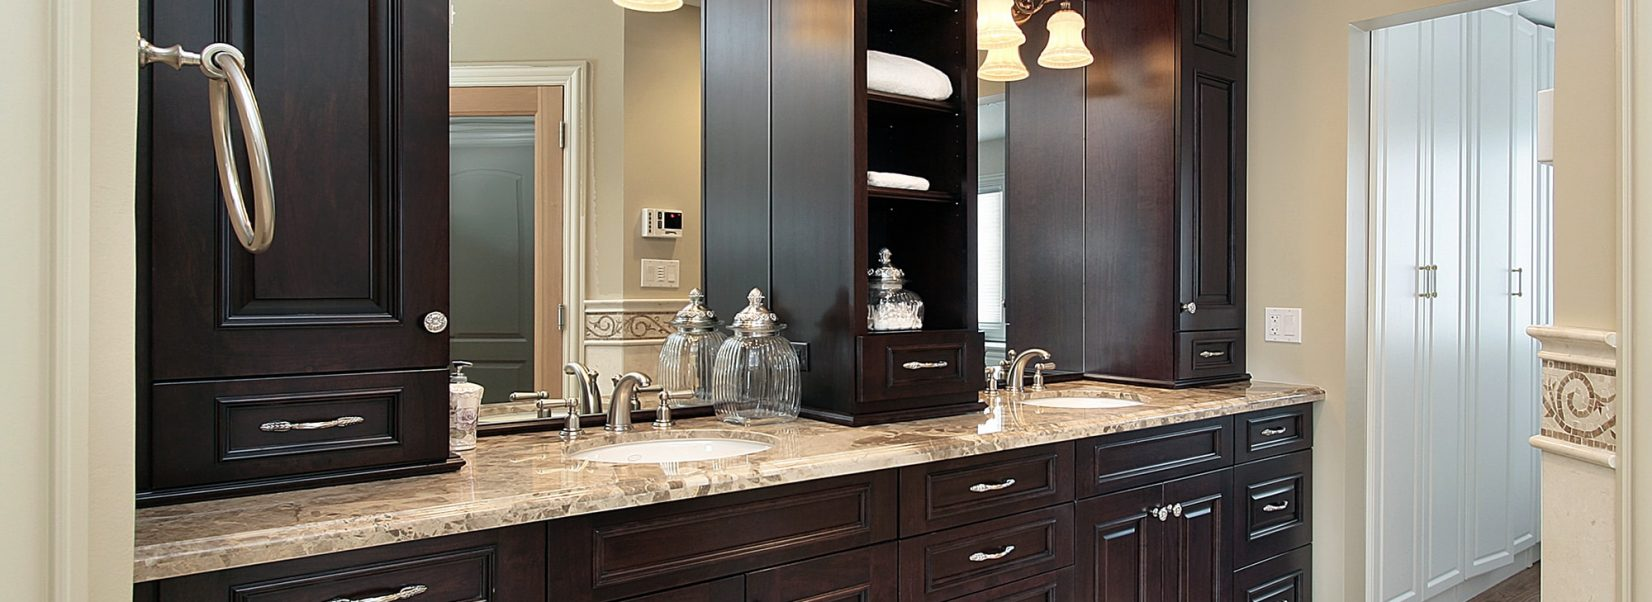 The Vanity Project In St Louis Whats Your Bathroom Vanity Style - Bathroom vanities st louis